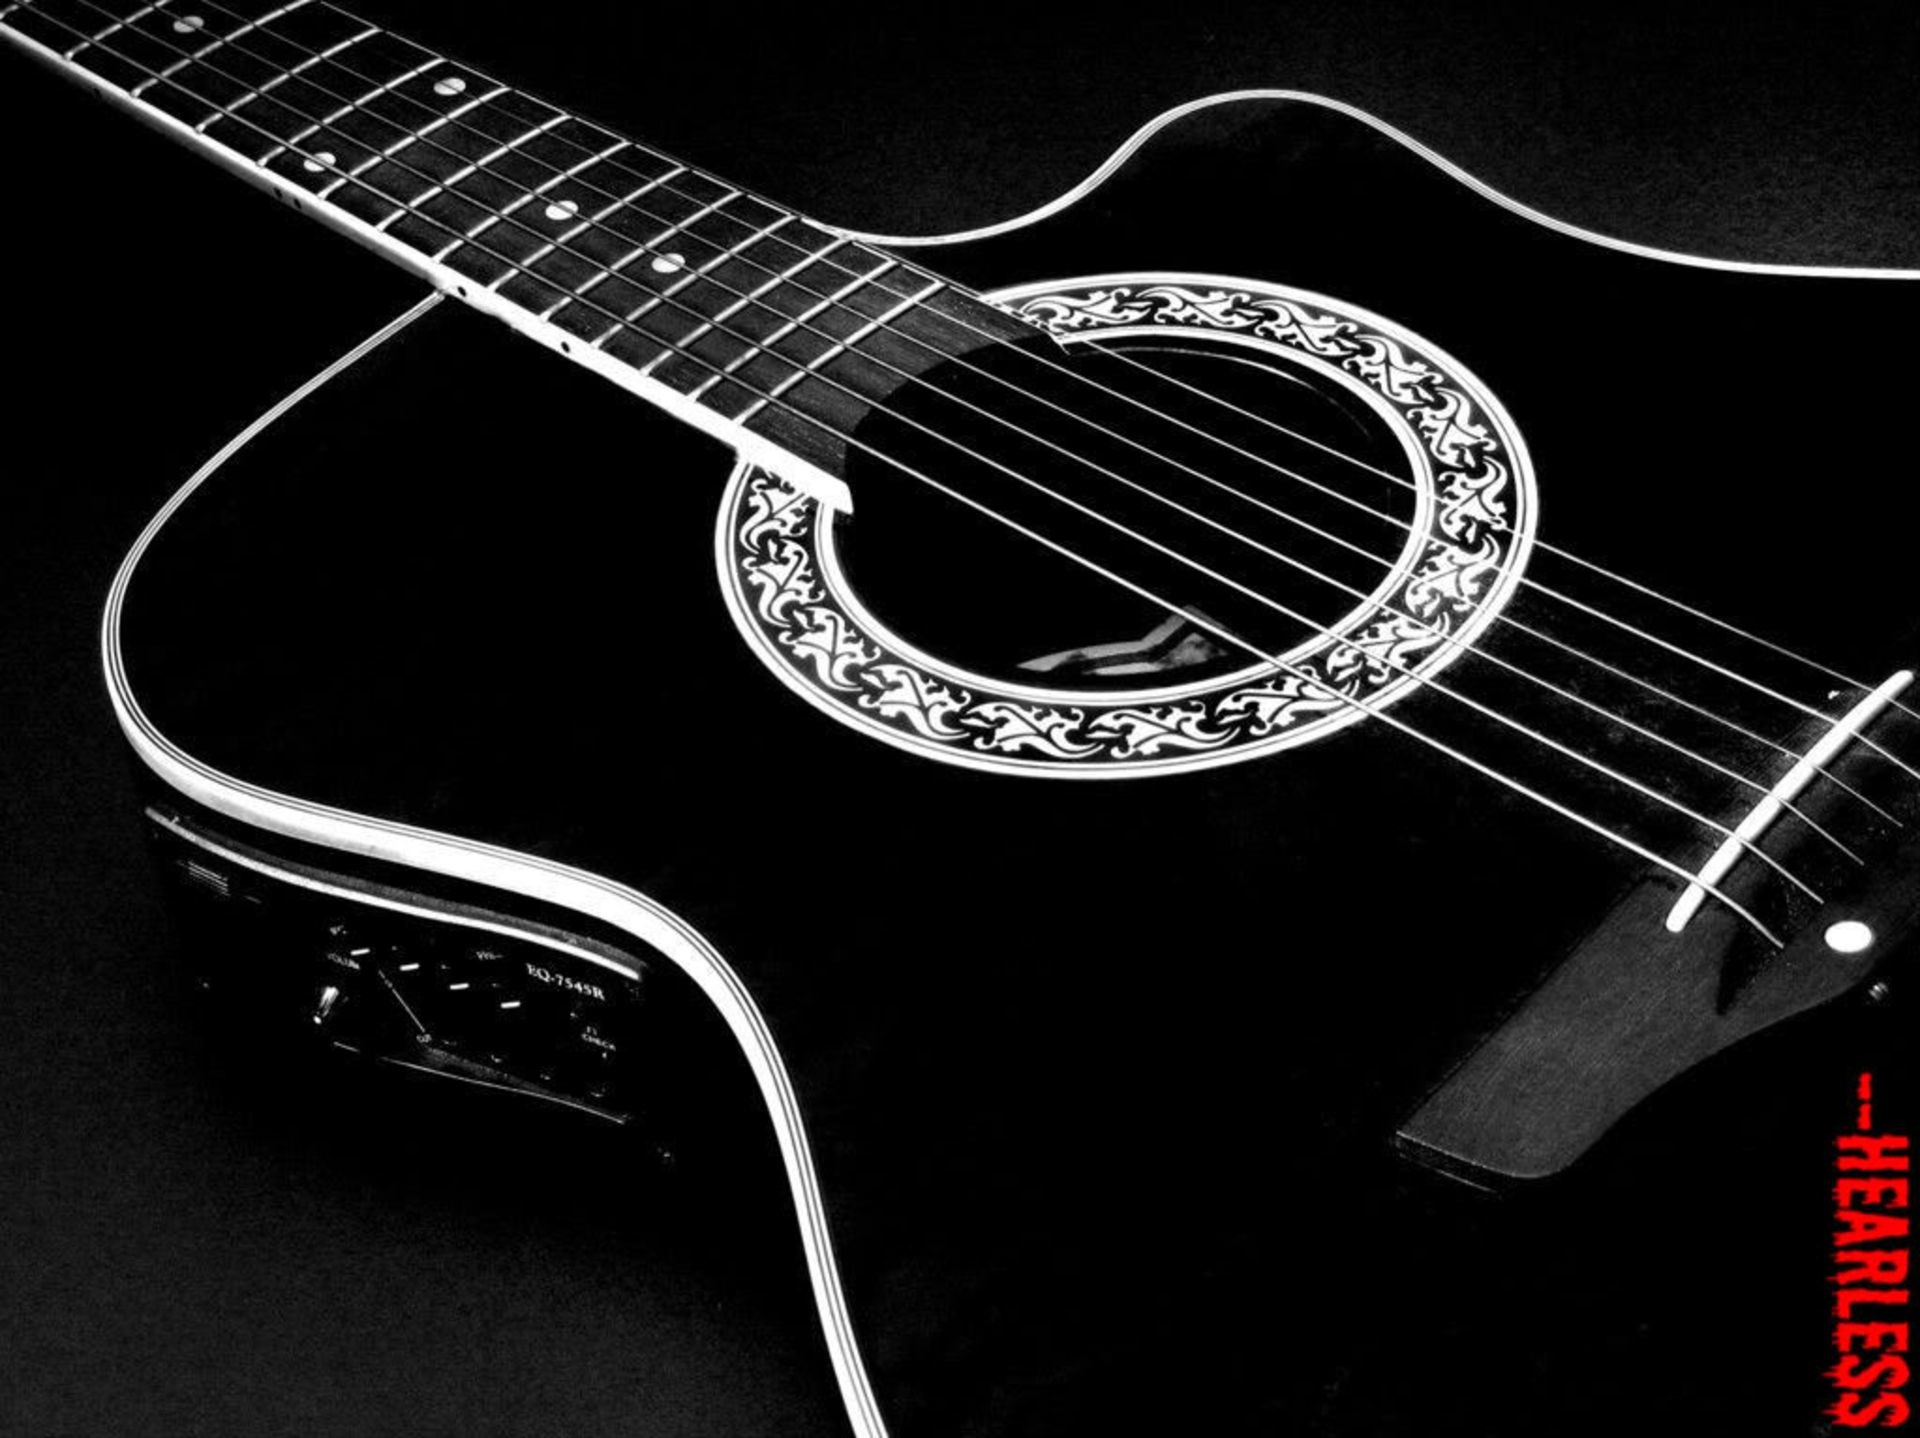 65 Acoustic Guitar Wallpaper Hd Android Iphone Desktop Hd Backgrounds Wallpapers 1080p 4k 1920x1438 2020